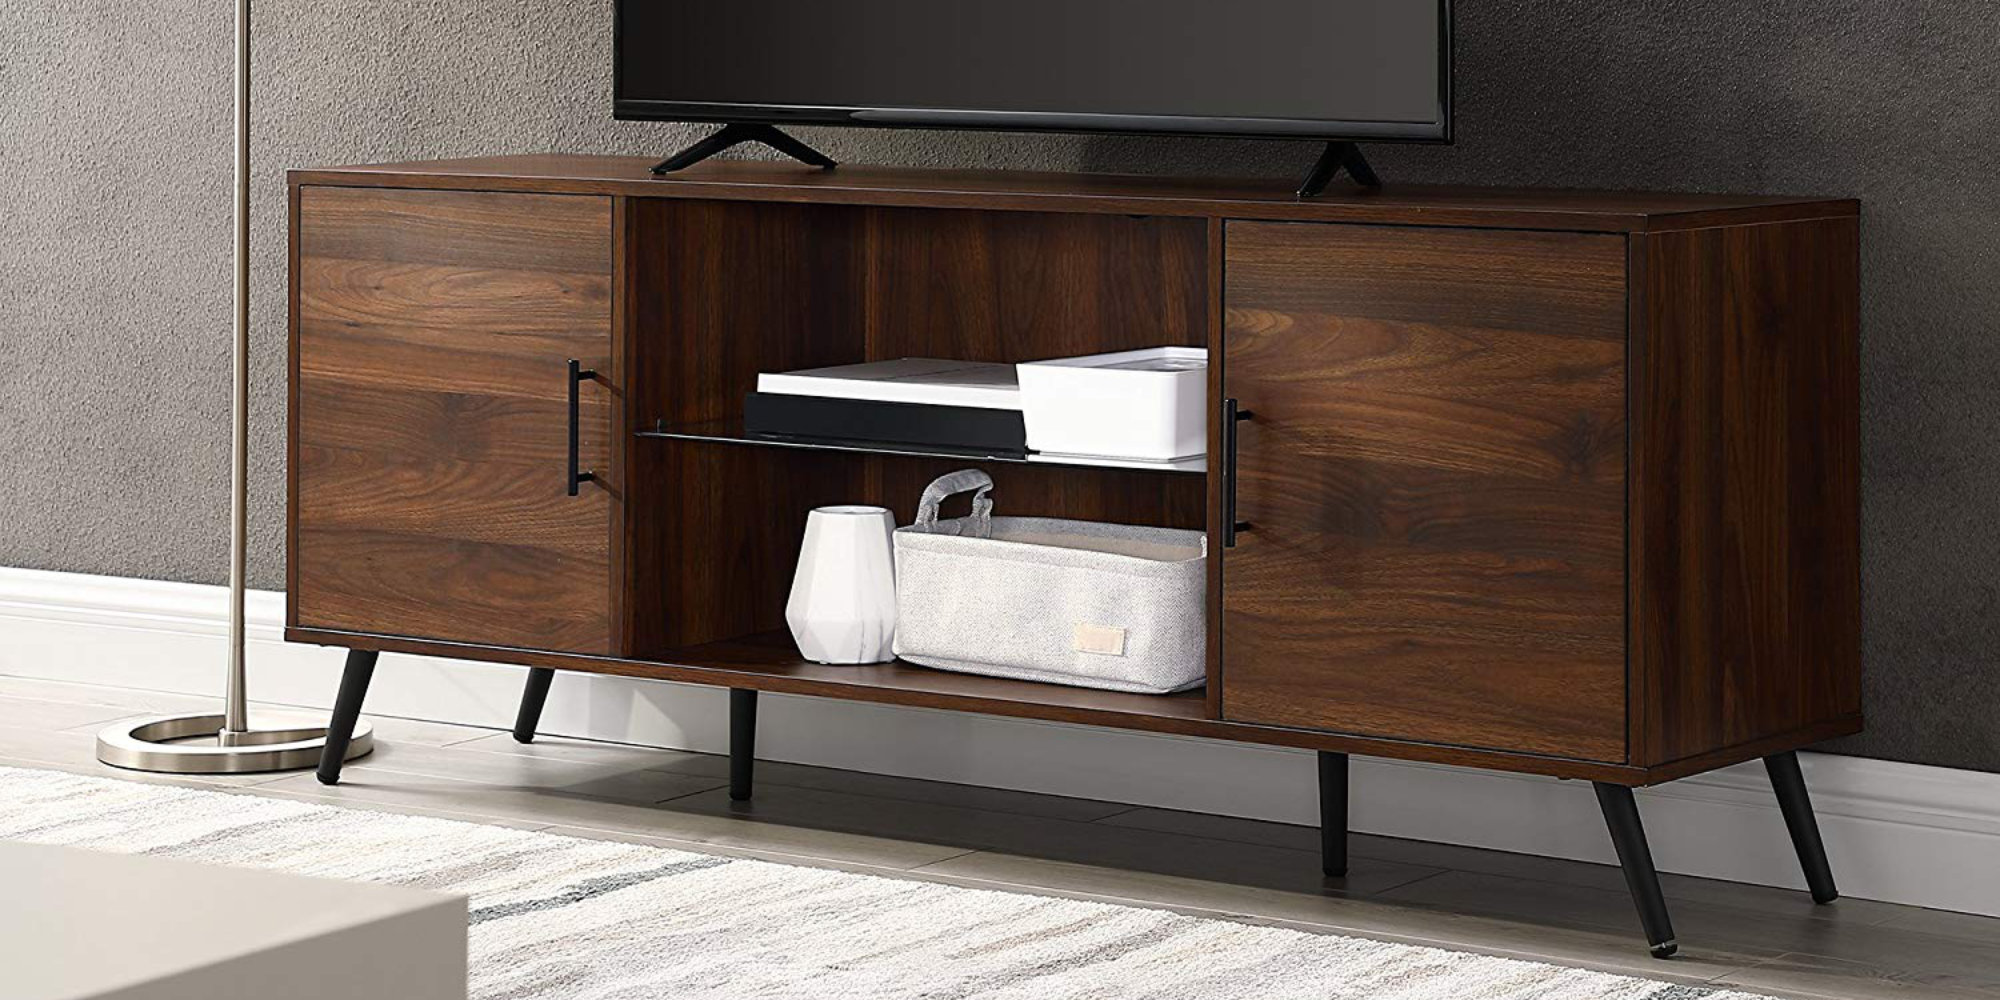 Walker Edison's mid-century modern Dark Walnut TV Stand returns to $138